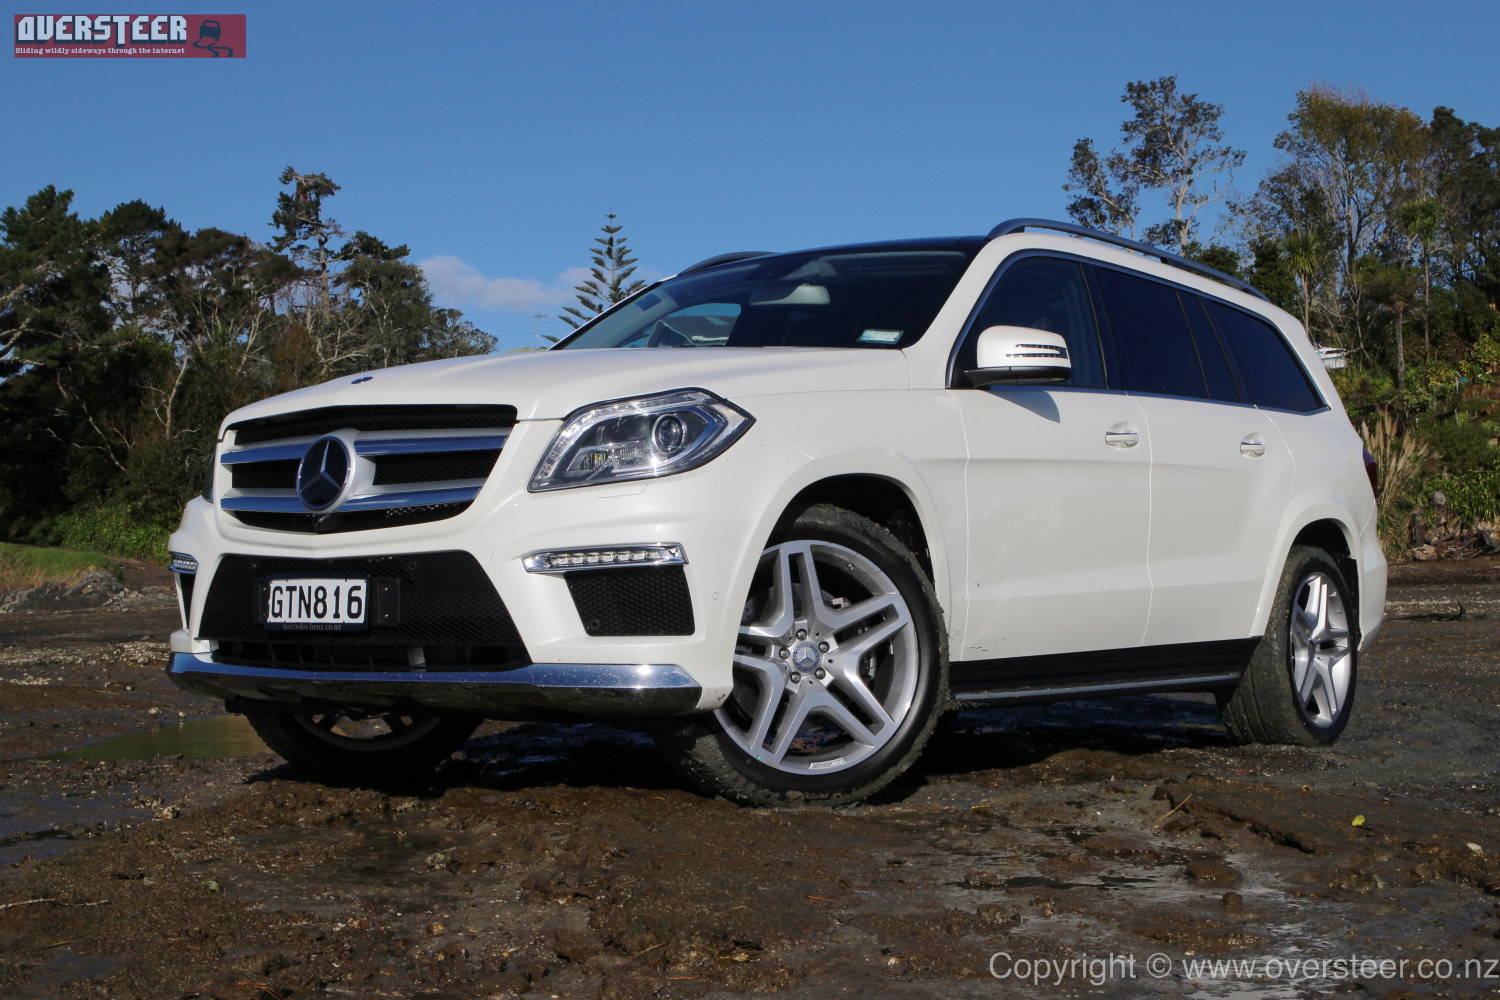 ROAD TEST: Mercedes-Benz GL500